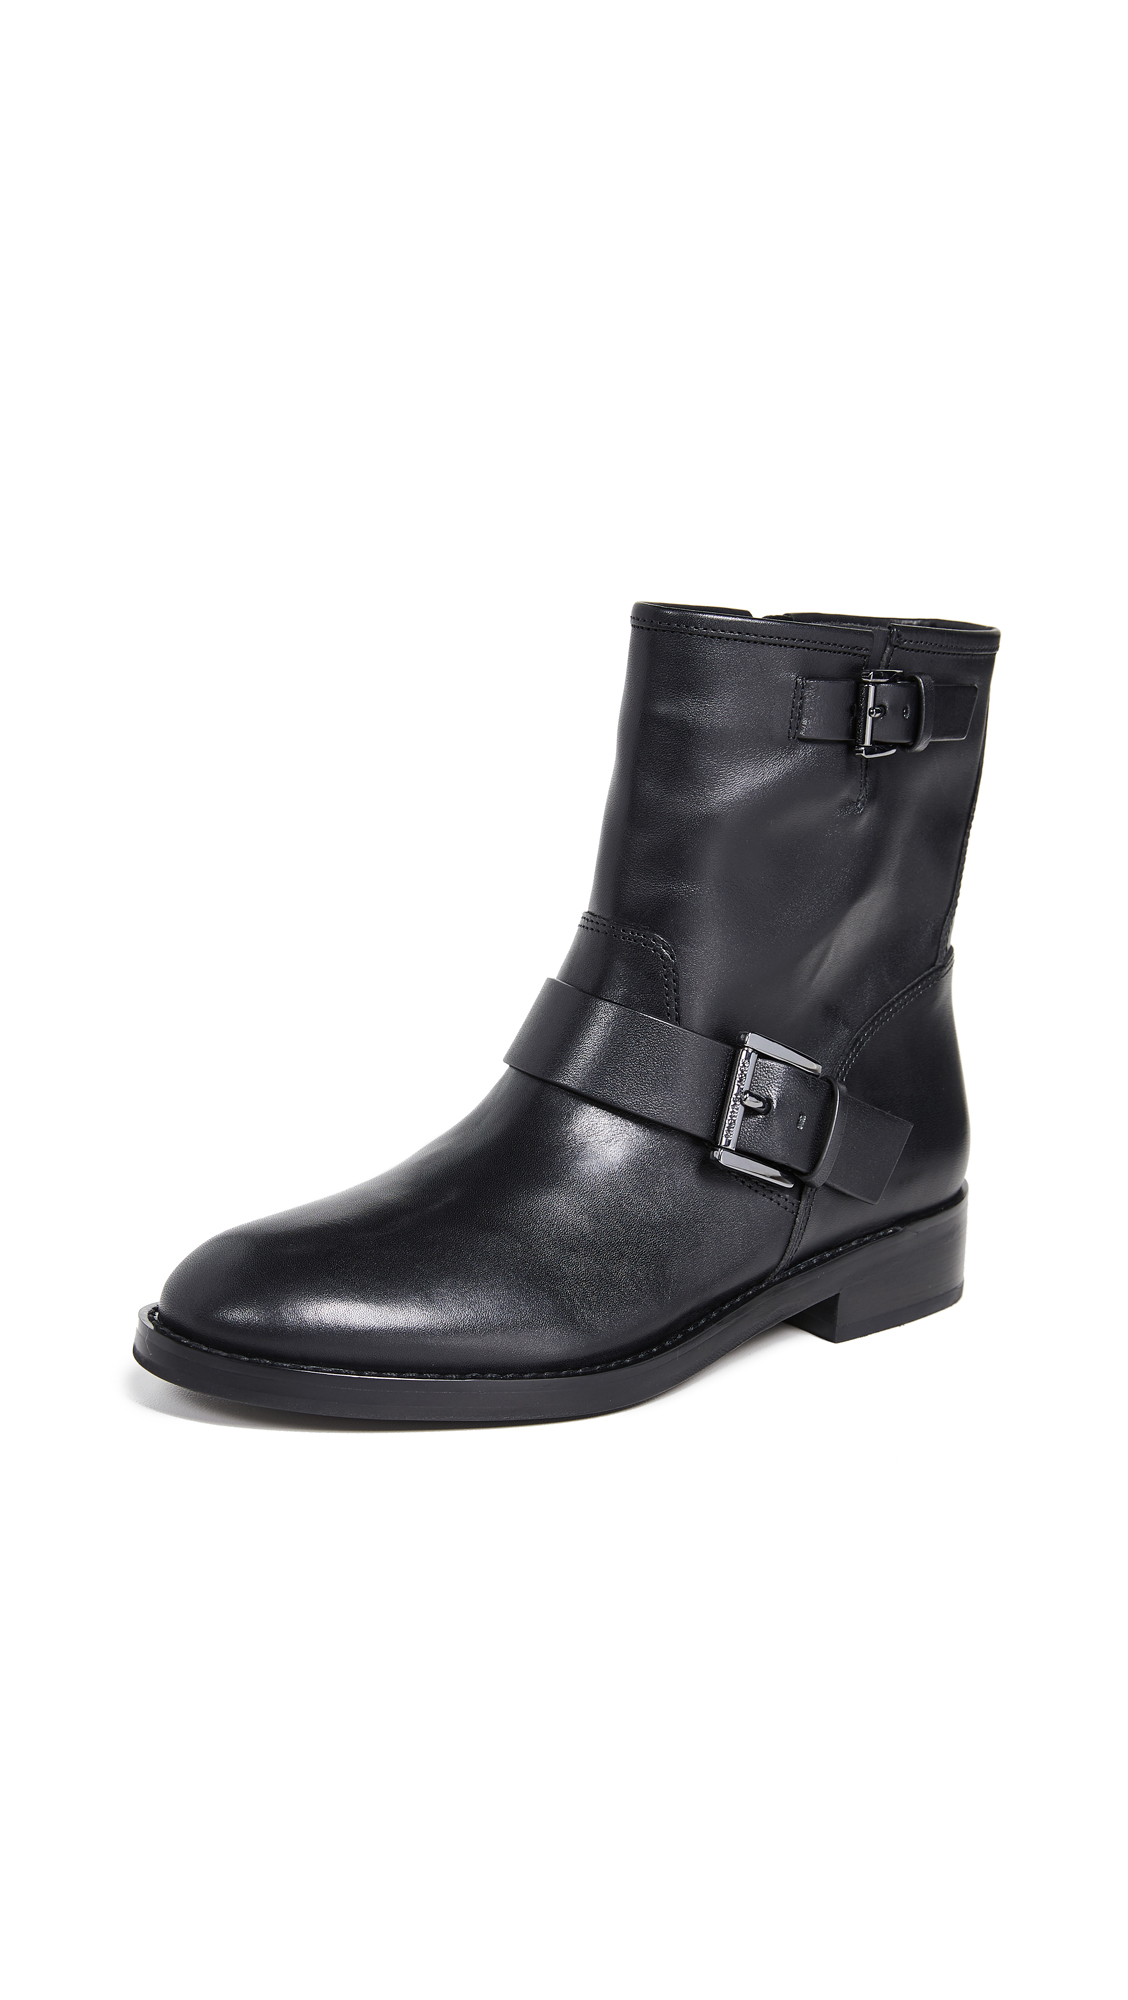 MICHAEL Michael Kors Reeves Moto Booties - Black